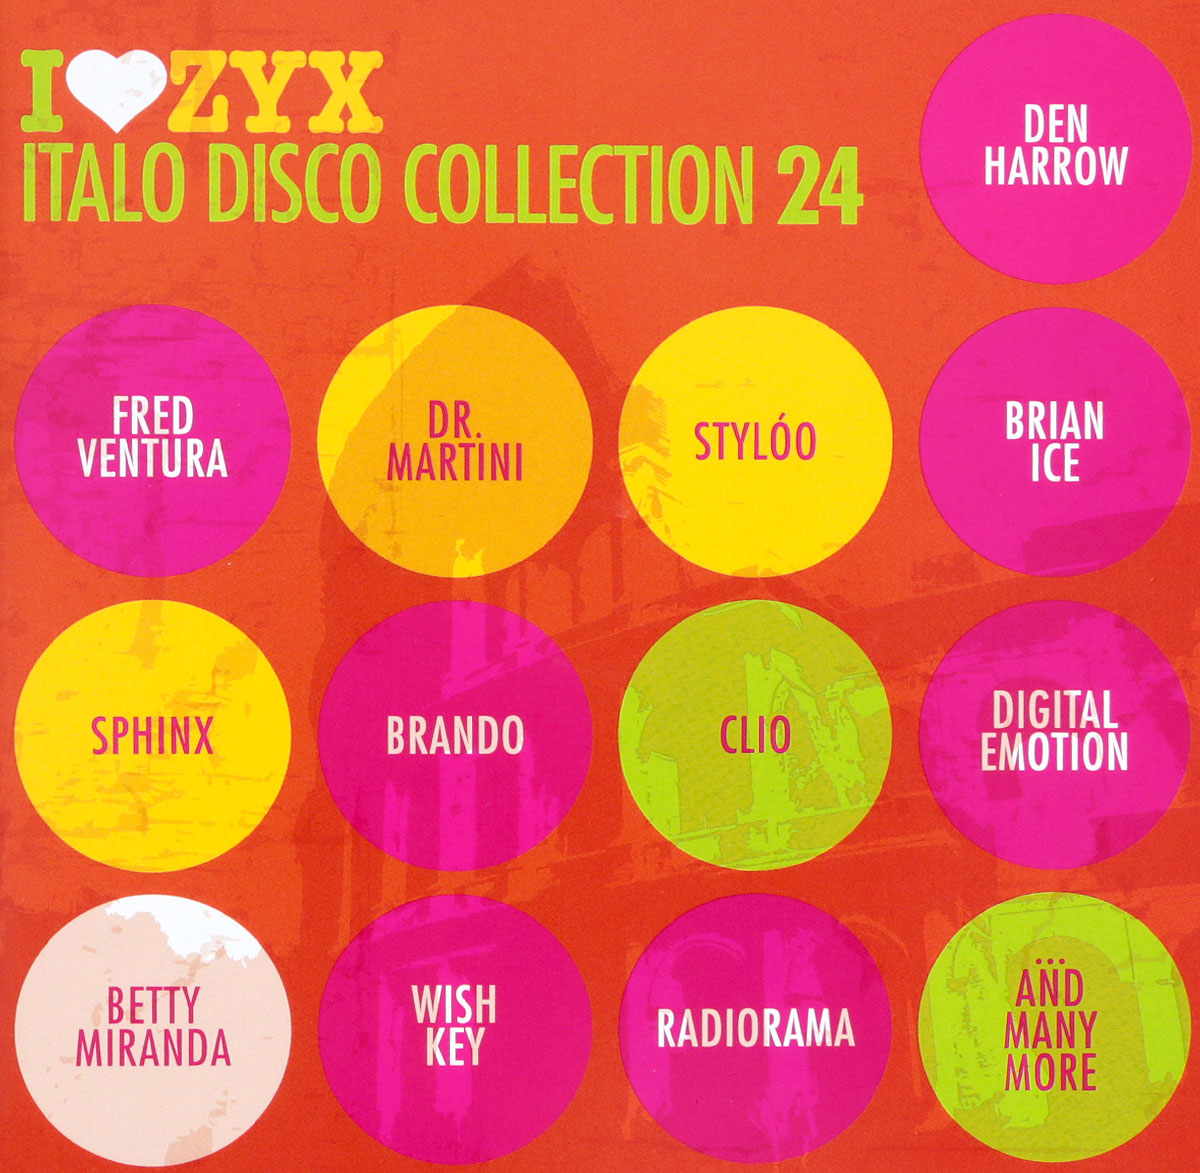 Дэн Хэрроу,Фред Вентура,Styloo Italo Disco Collection 24 (3 CD) italo disco collection 13 3 cd